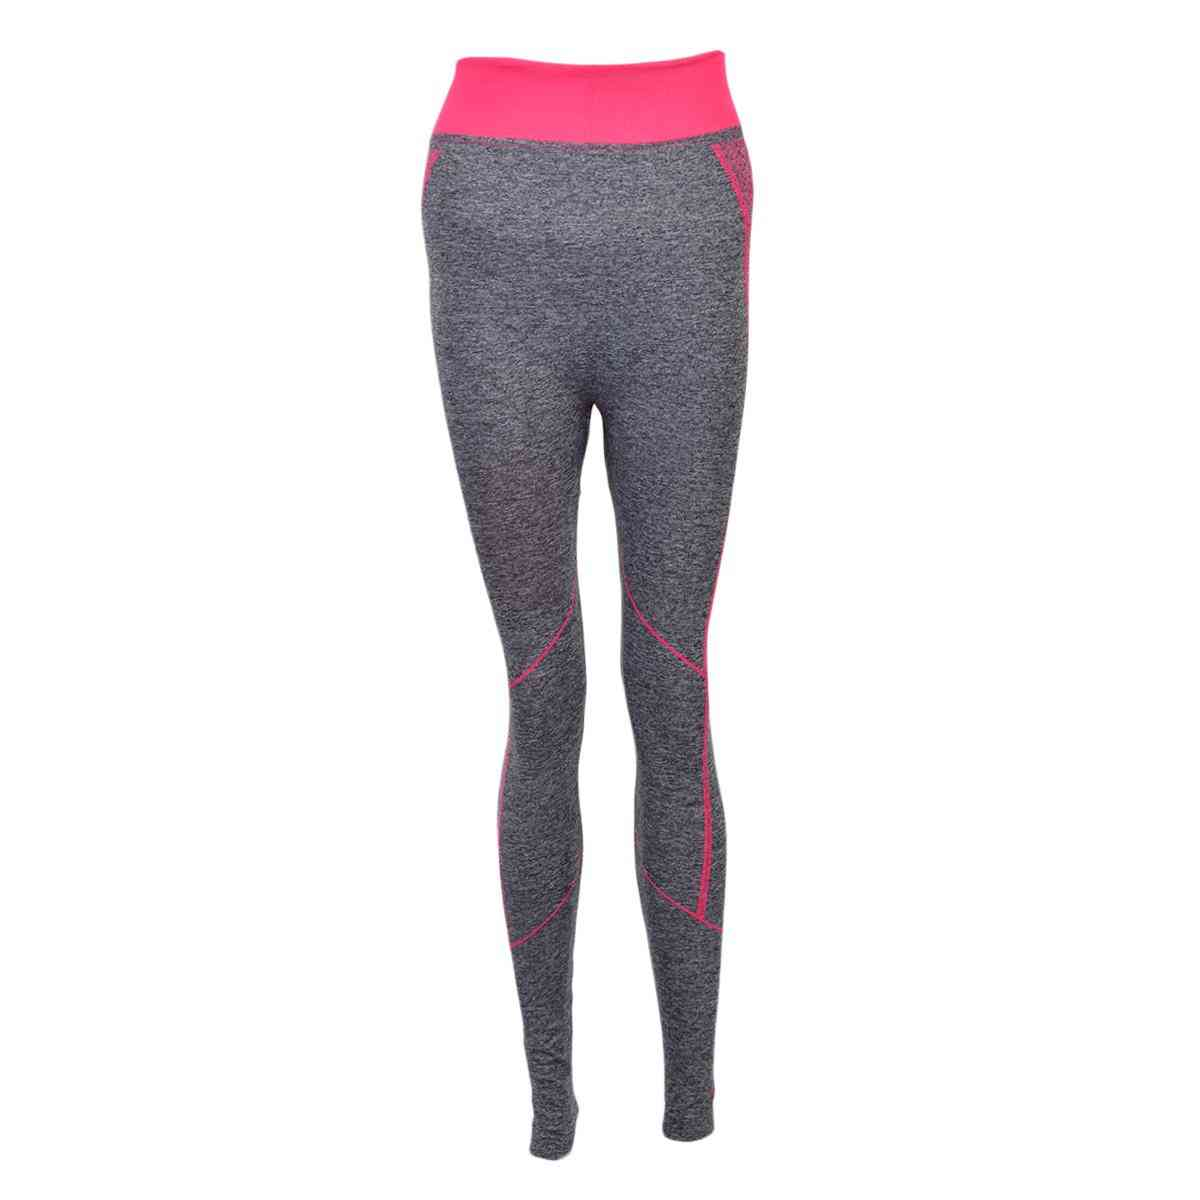 Yoga Tights High Quality For Women